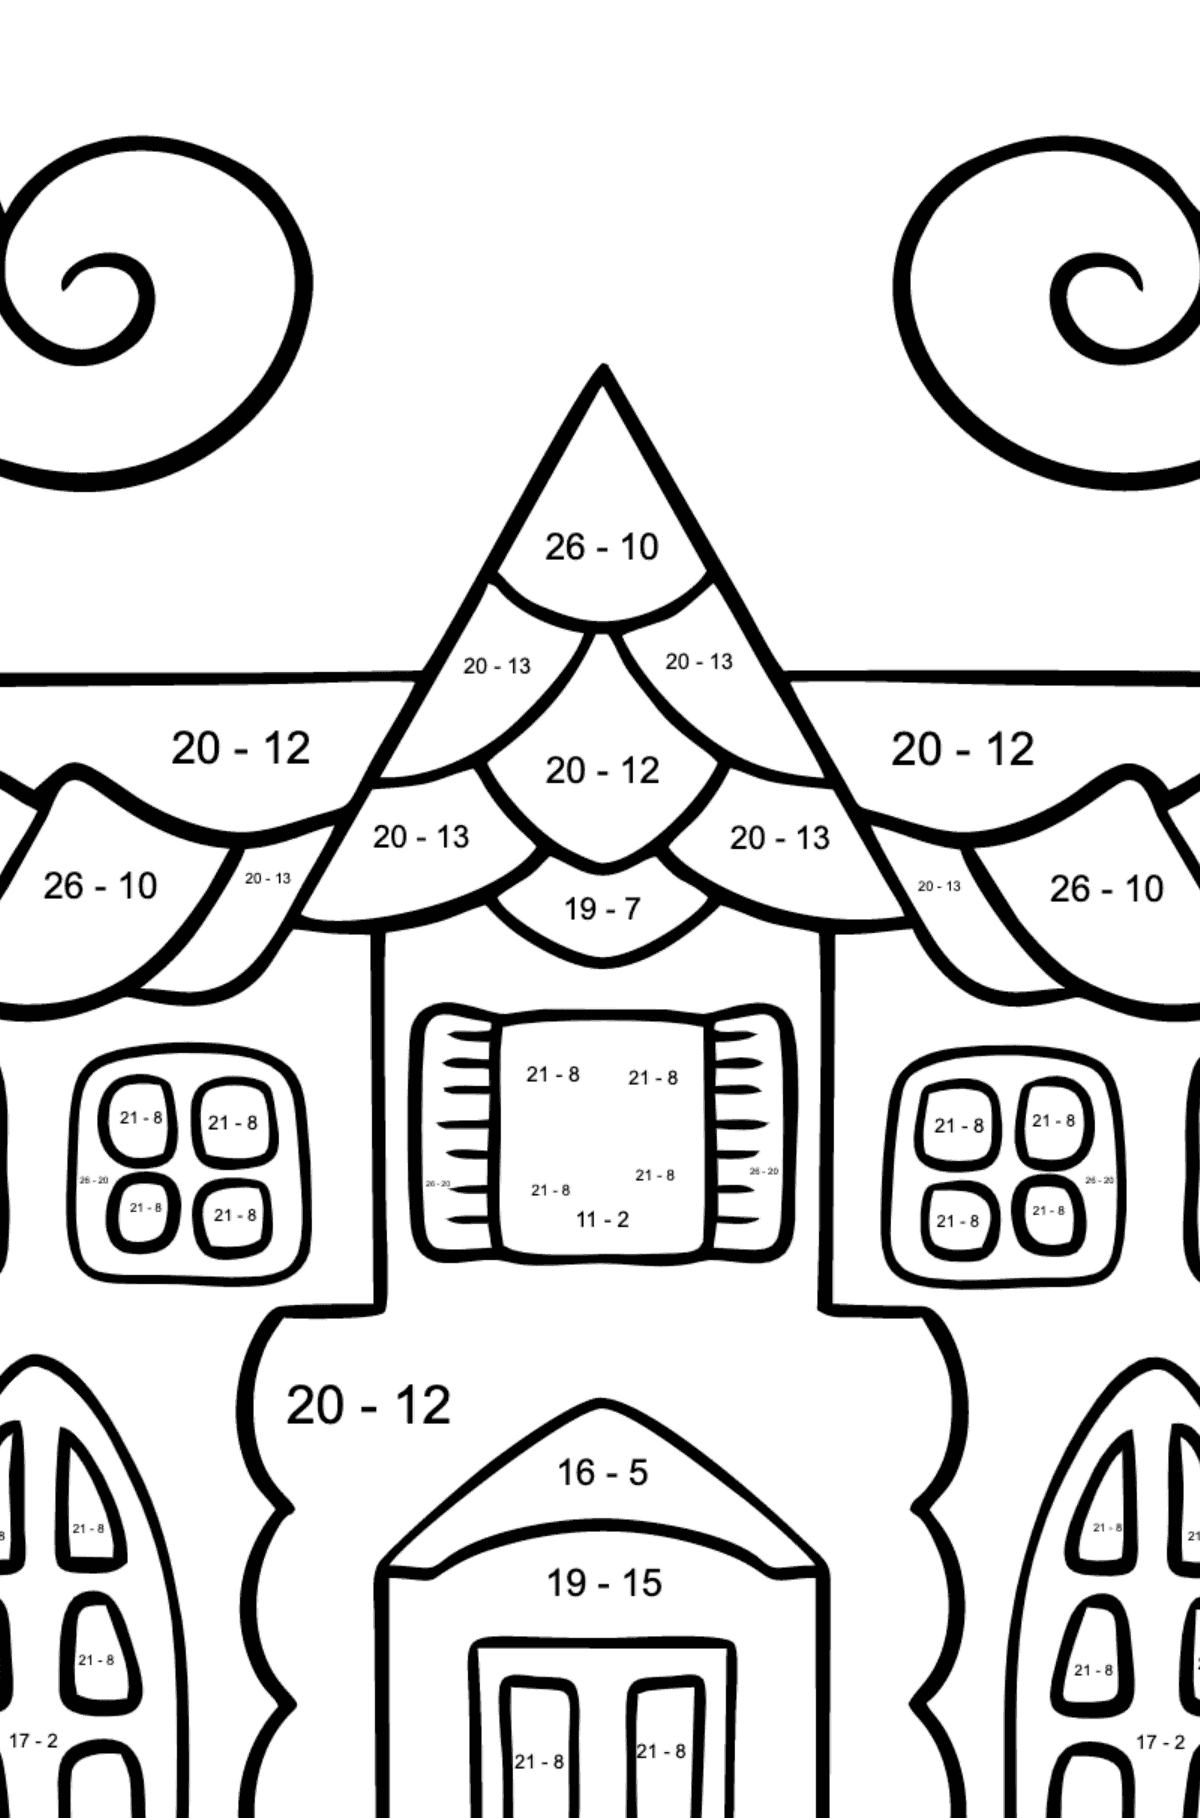 Complex Coloring Page - A House in an Enchanted Kingdom - Math Coloring - Subtraction for Kids